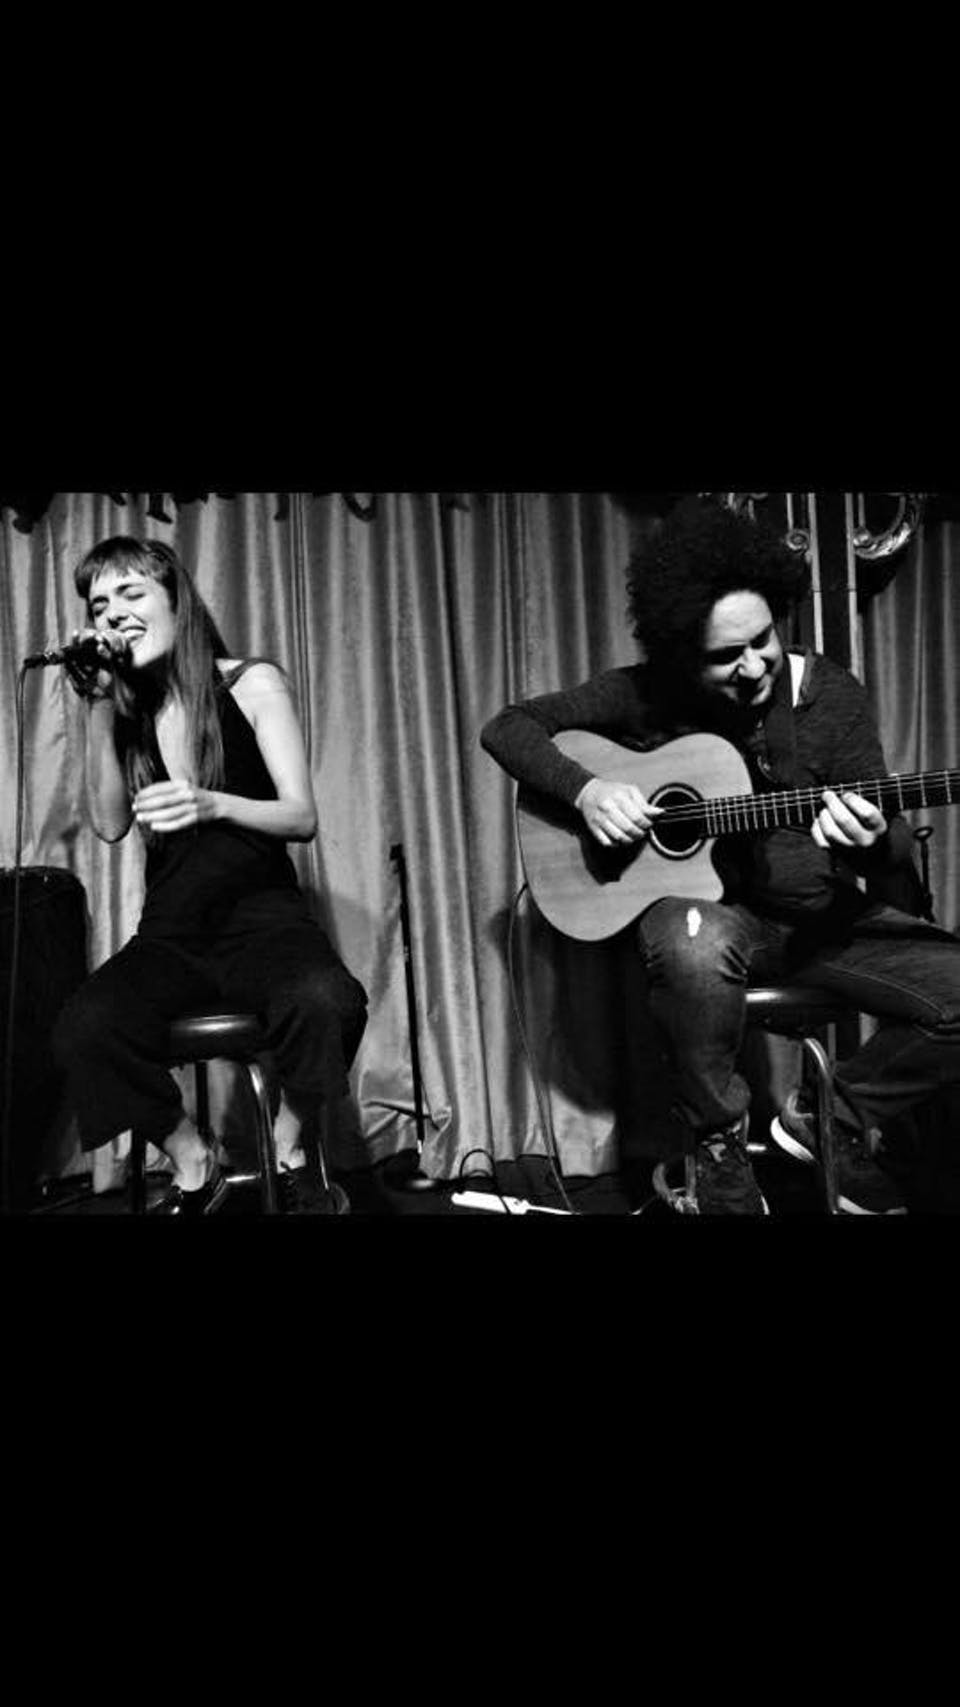 Camille Bertault and Diego Figueiredo Duo